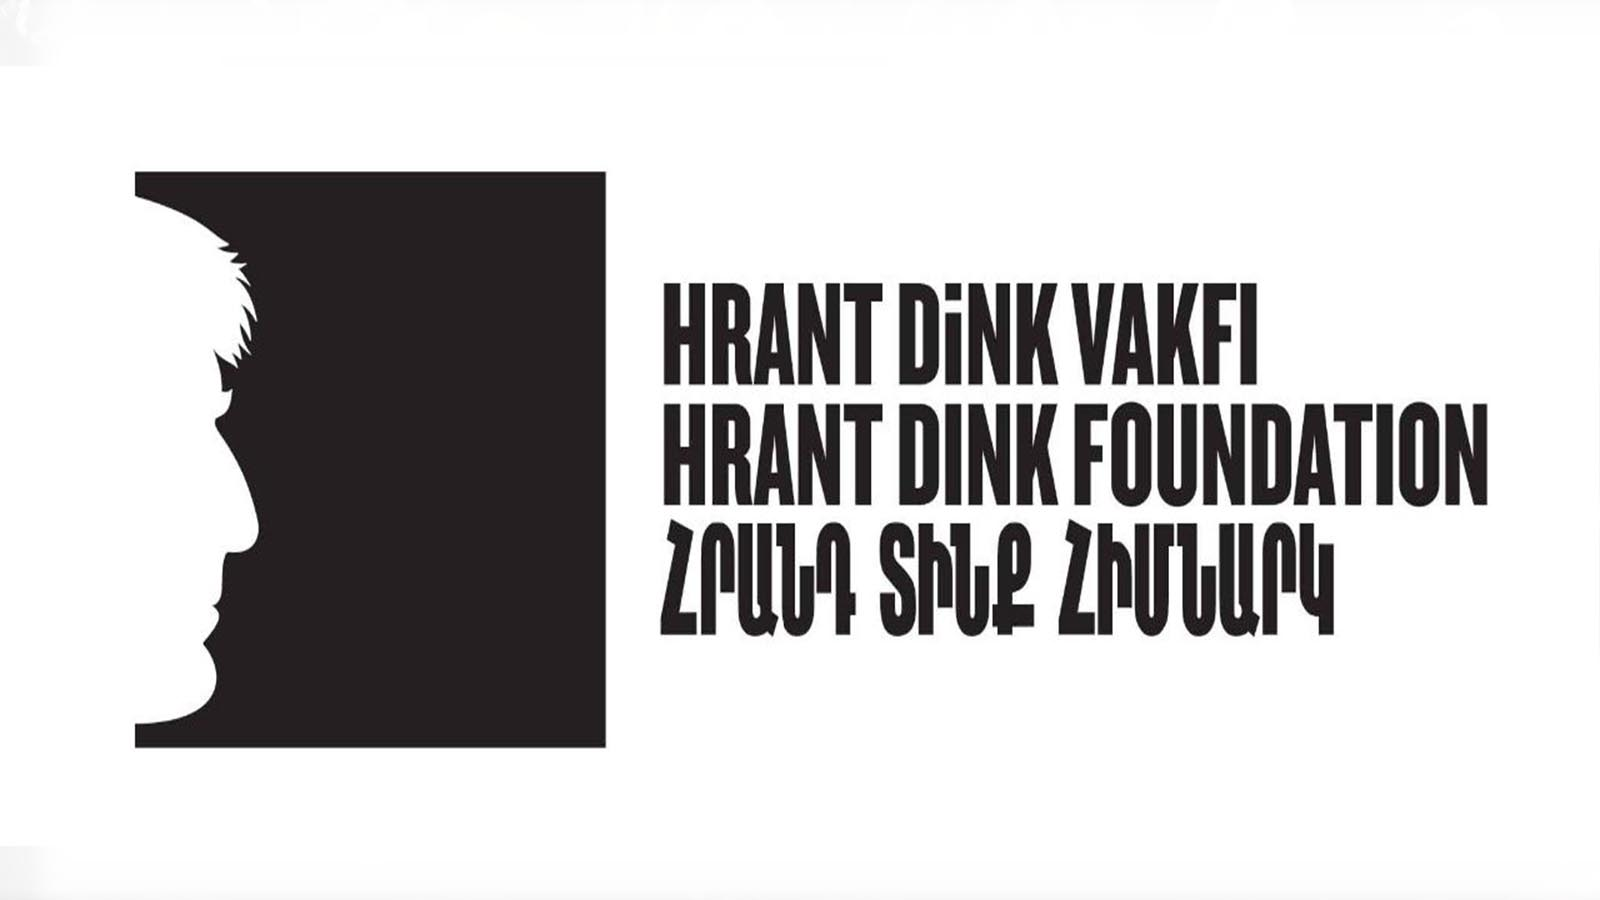 The person who sent a threat message to the Hrant Dink Foundation is arrested